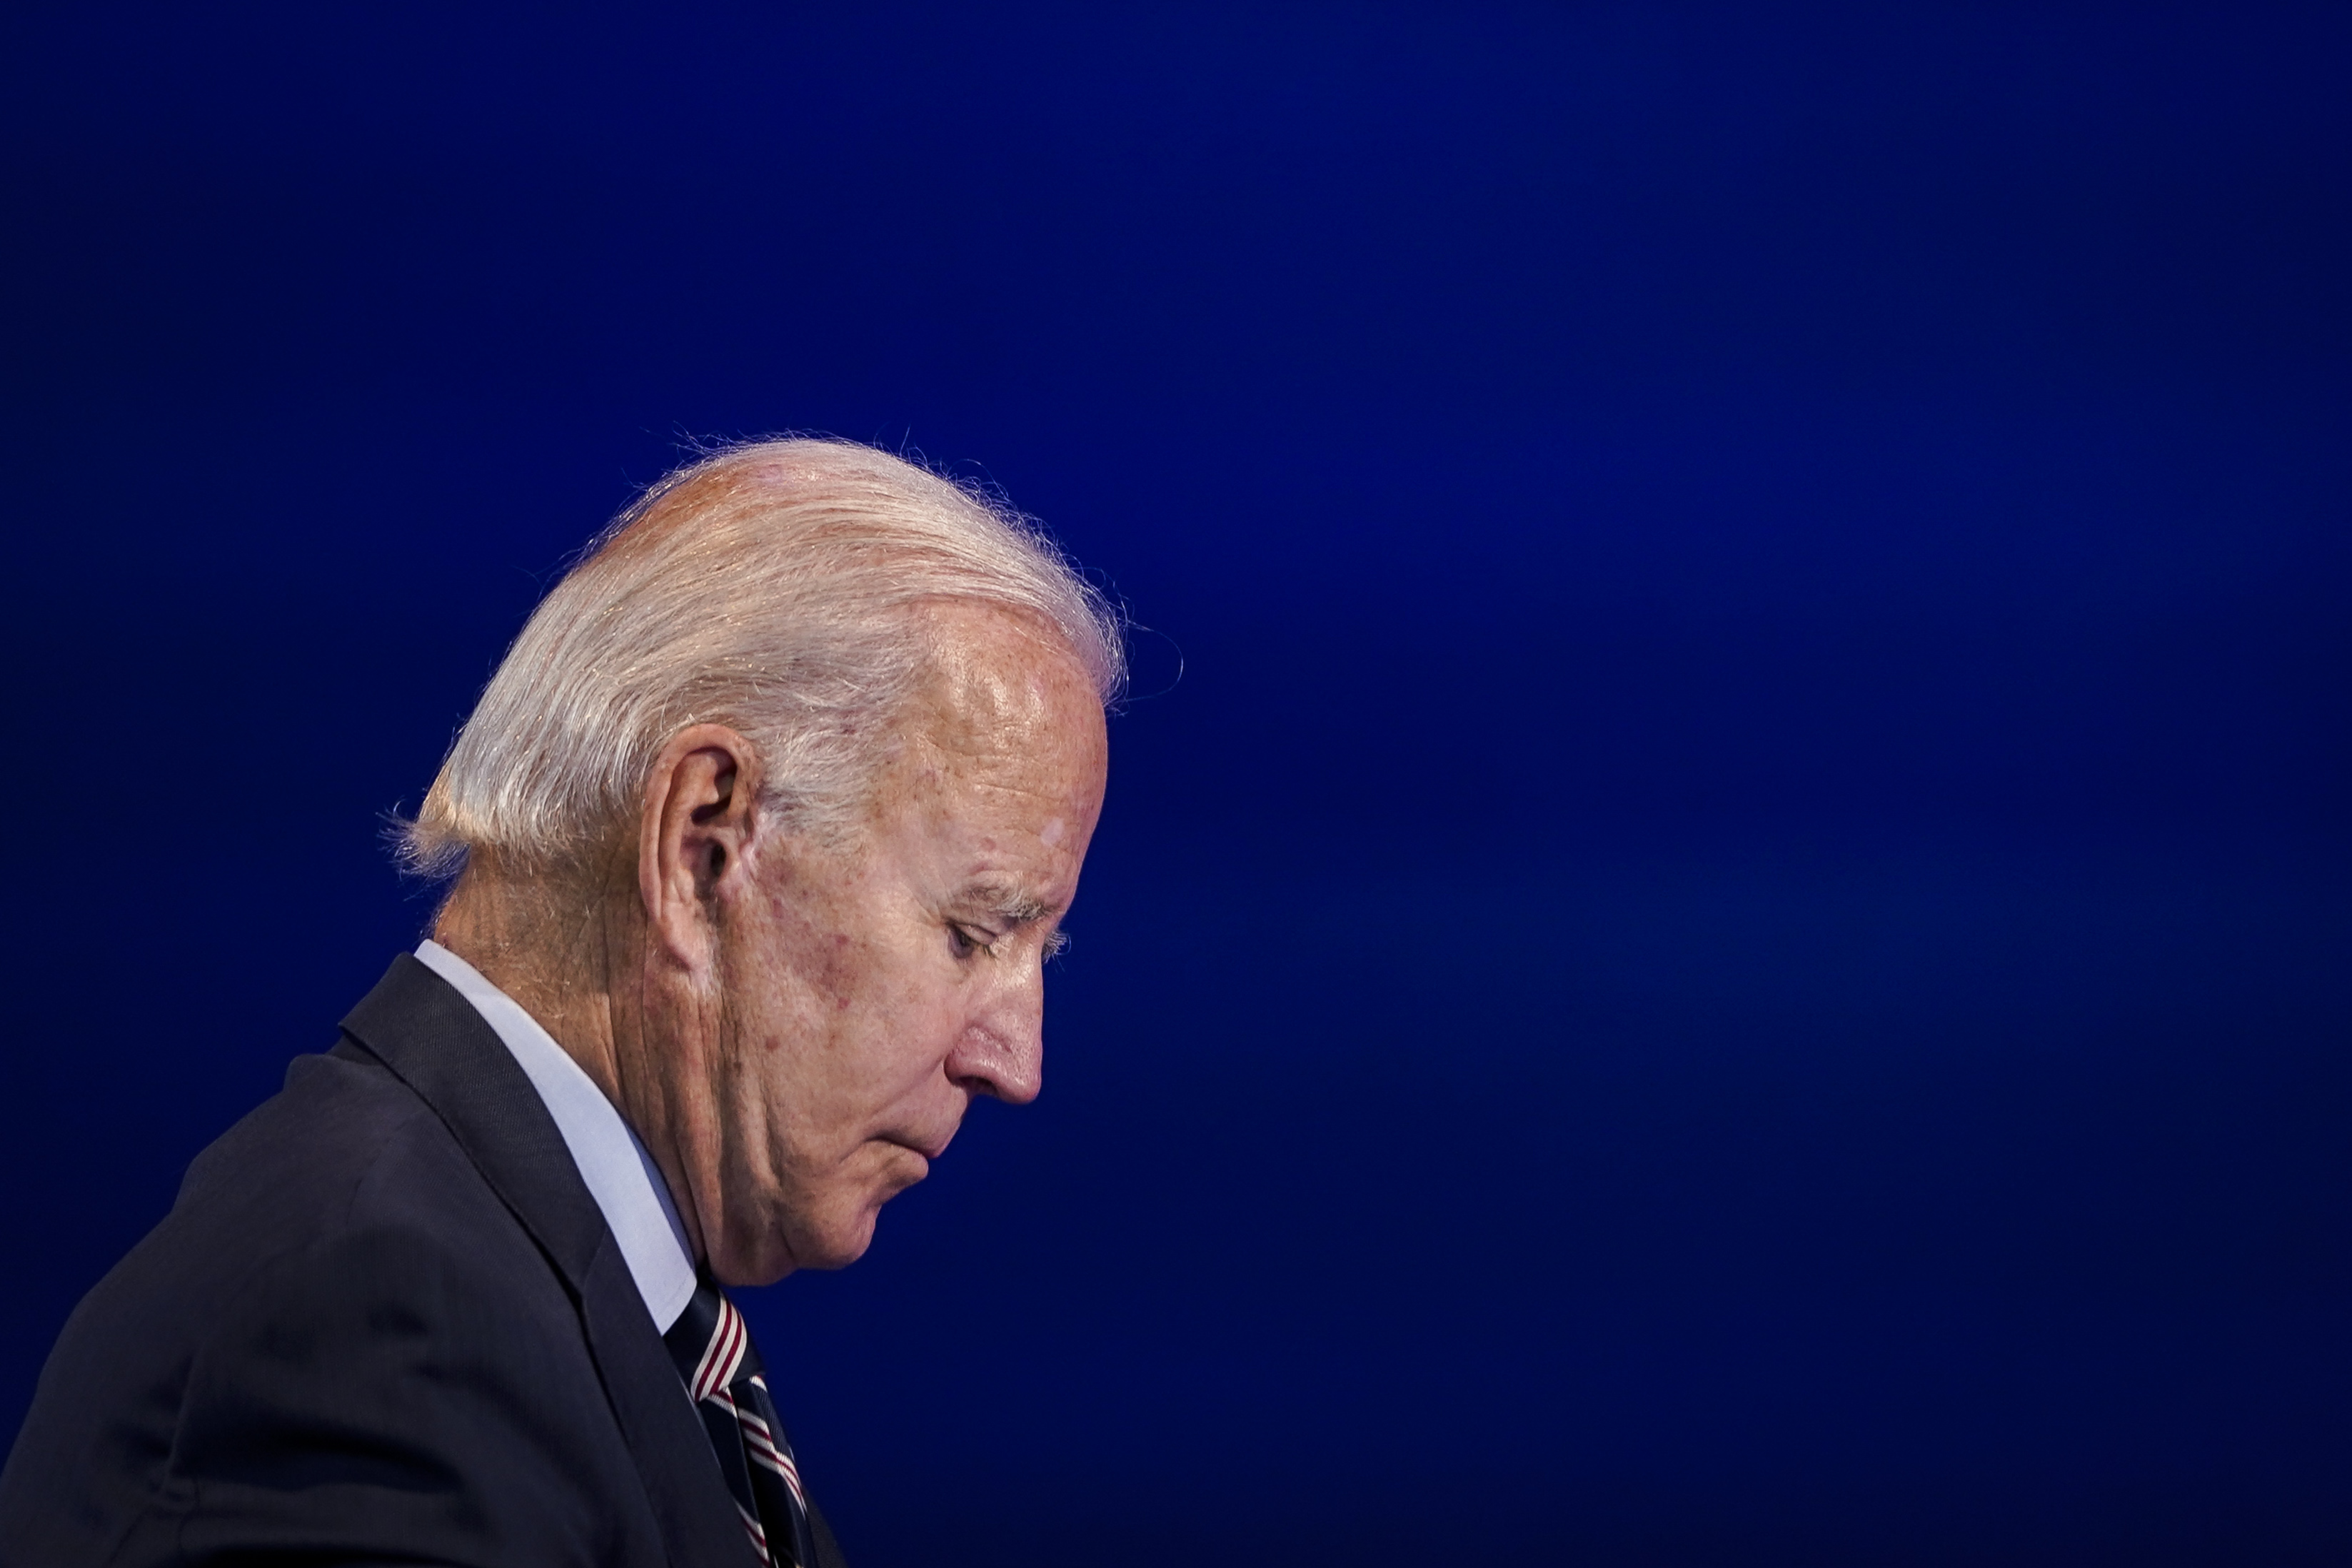 Presidential Candidate Joe Biden Delivers Remarks In Wilmington, Delaware